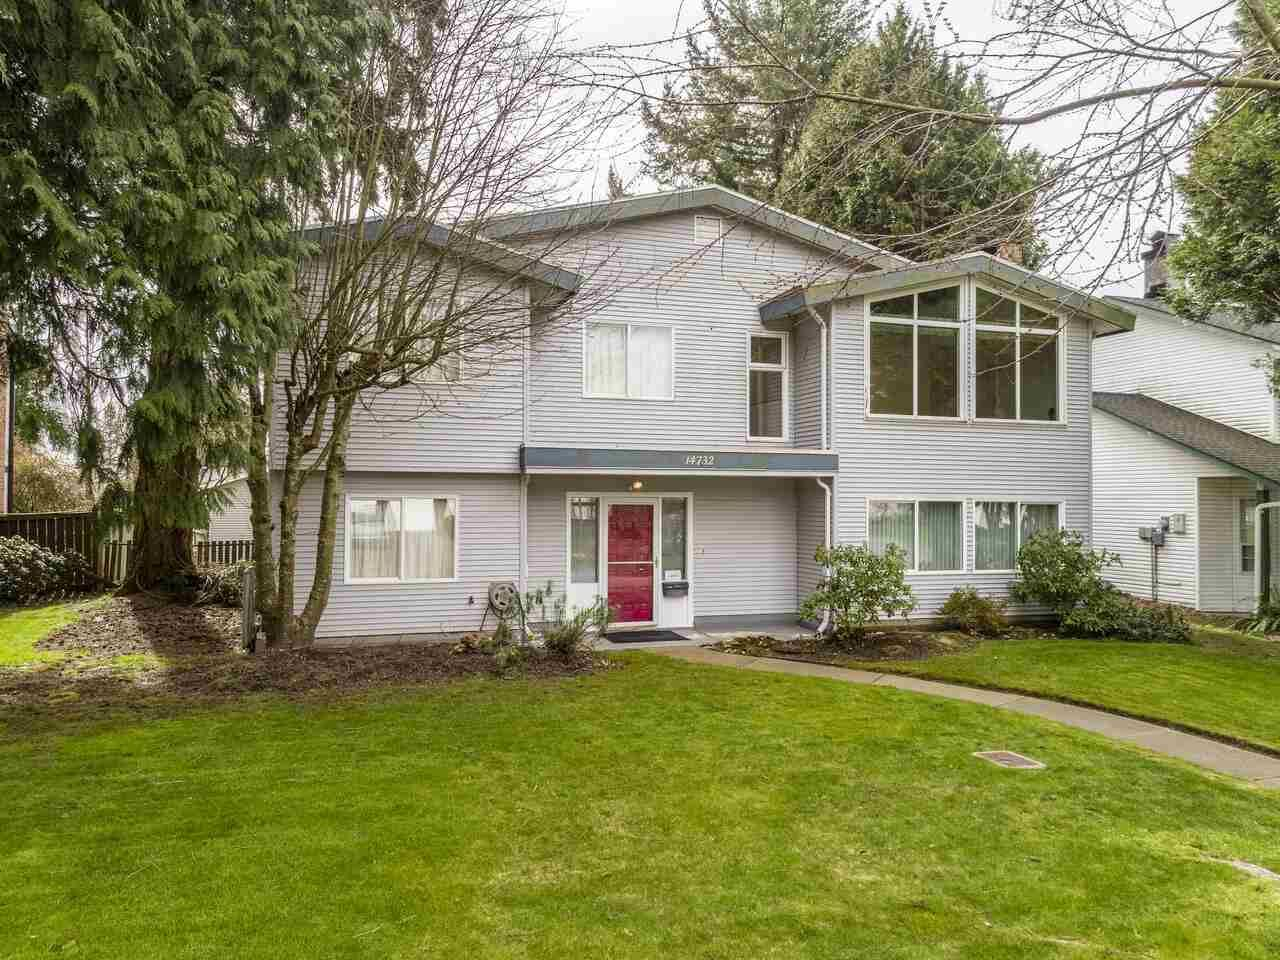 """Main Photo: 14732 16A Avenue in Surrey: Sunnyside Park Surrey House for sale in """"THE GLENNS"""" (South Surrey White Rock)  : MLS®# R2549303"""